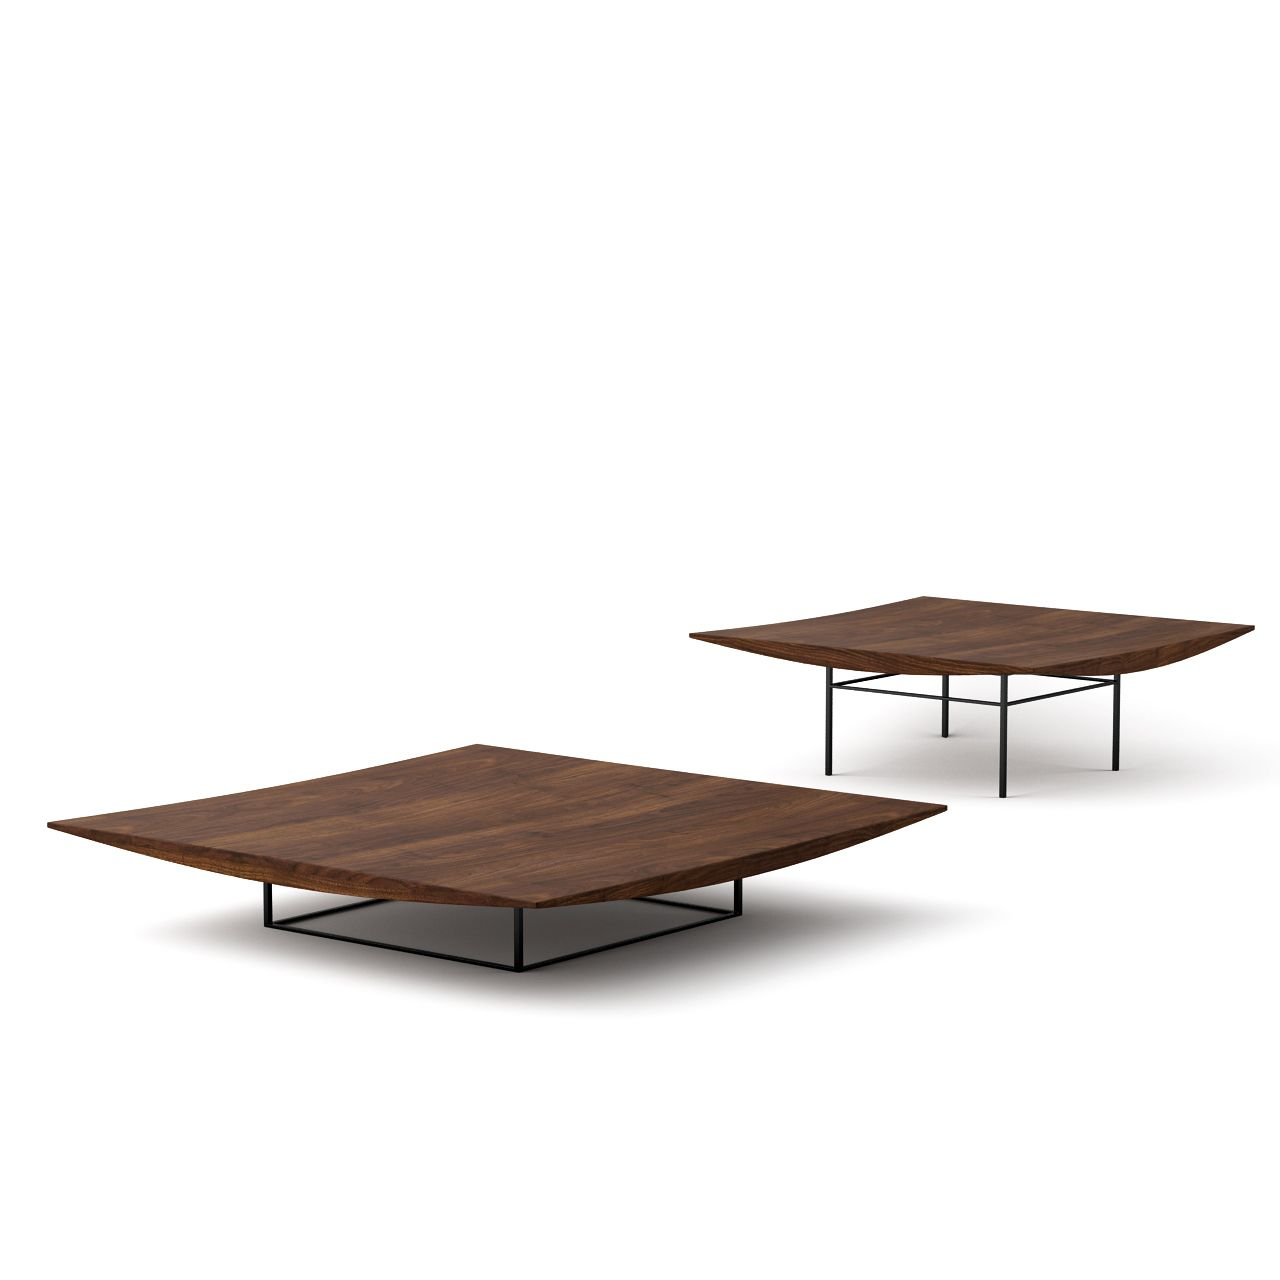 Free 3d Model Ibiza Forte Coffee Table By Ritzwell Http  # Muebles Sabater